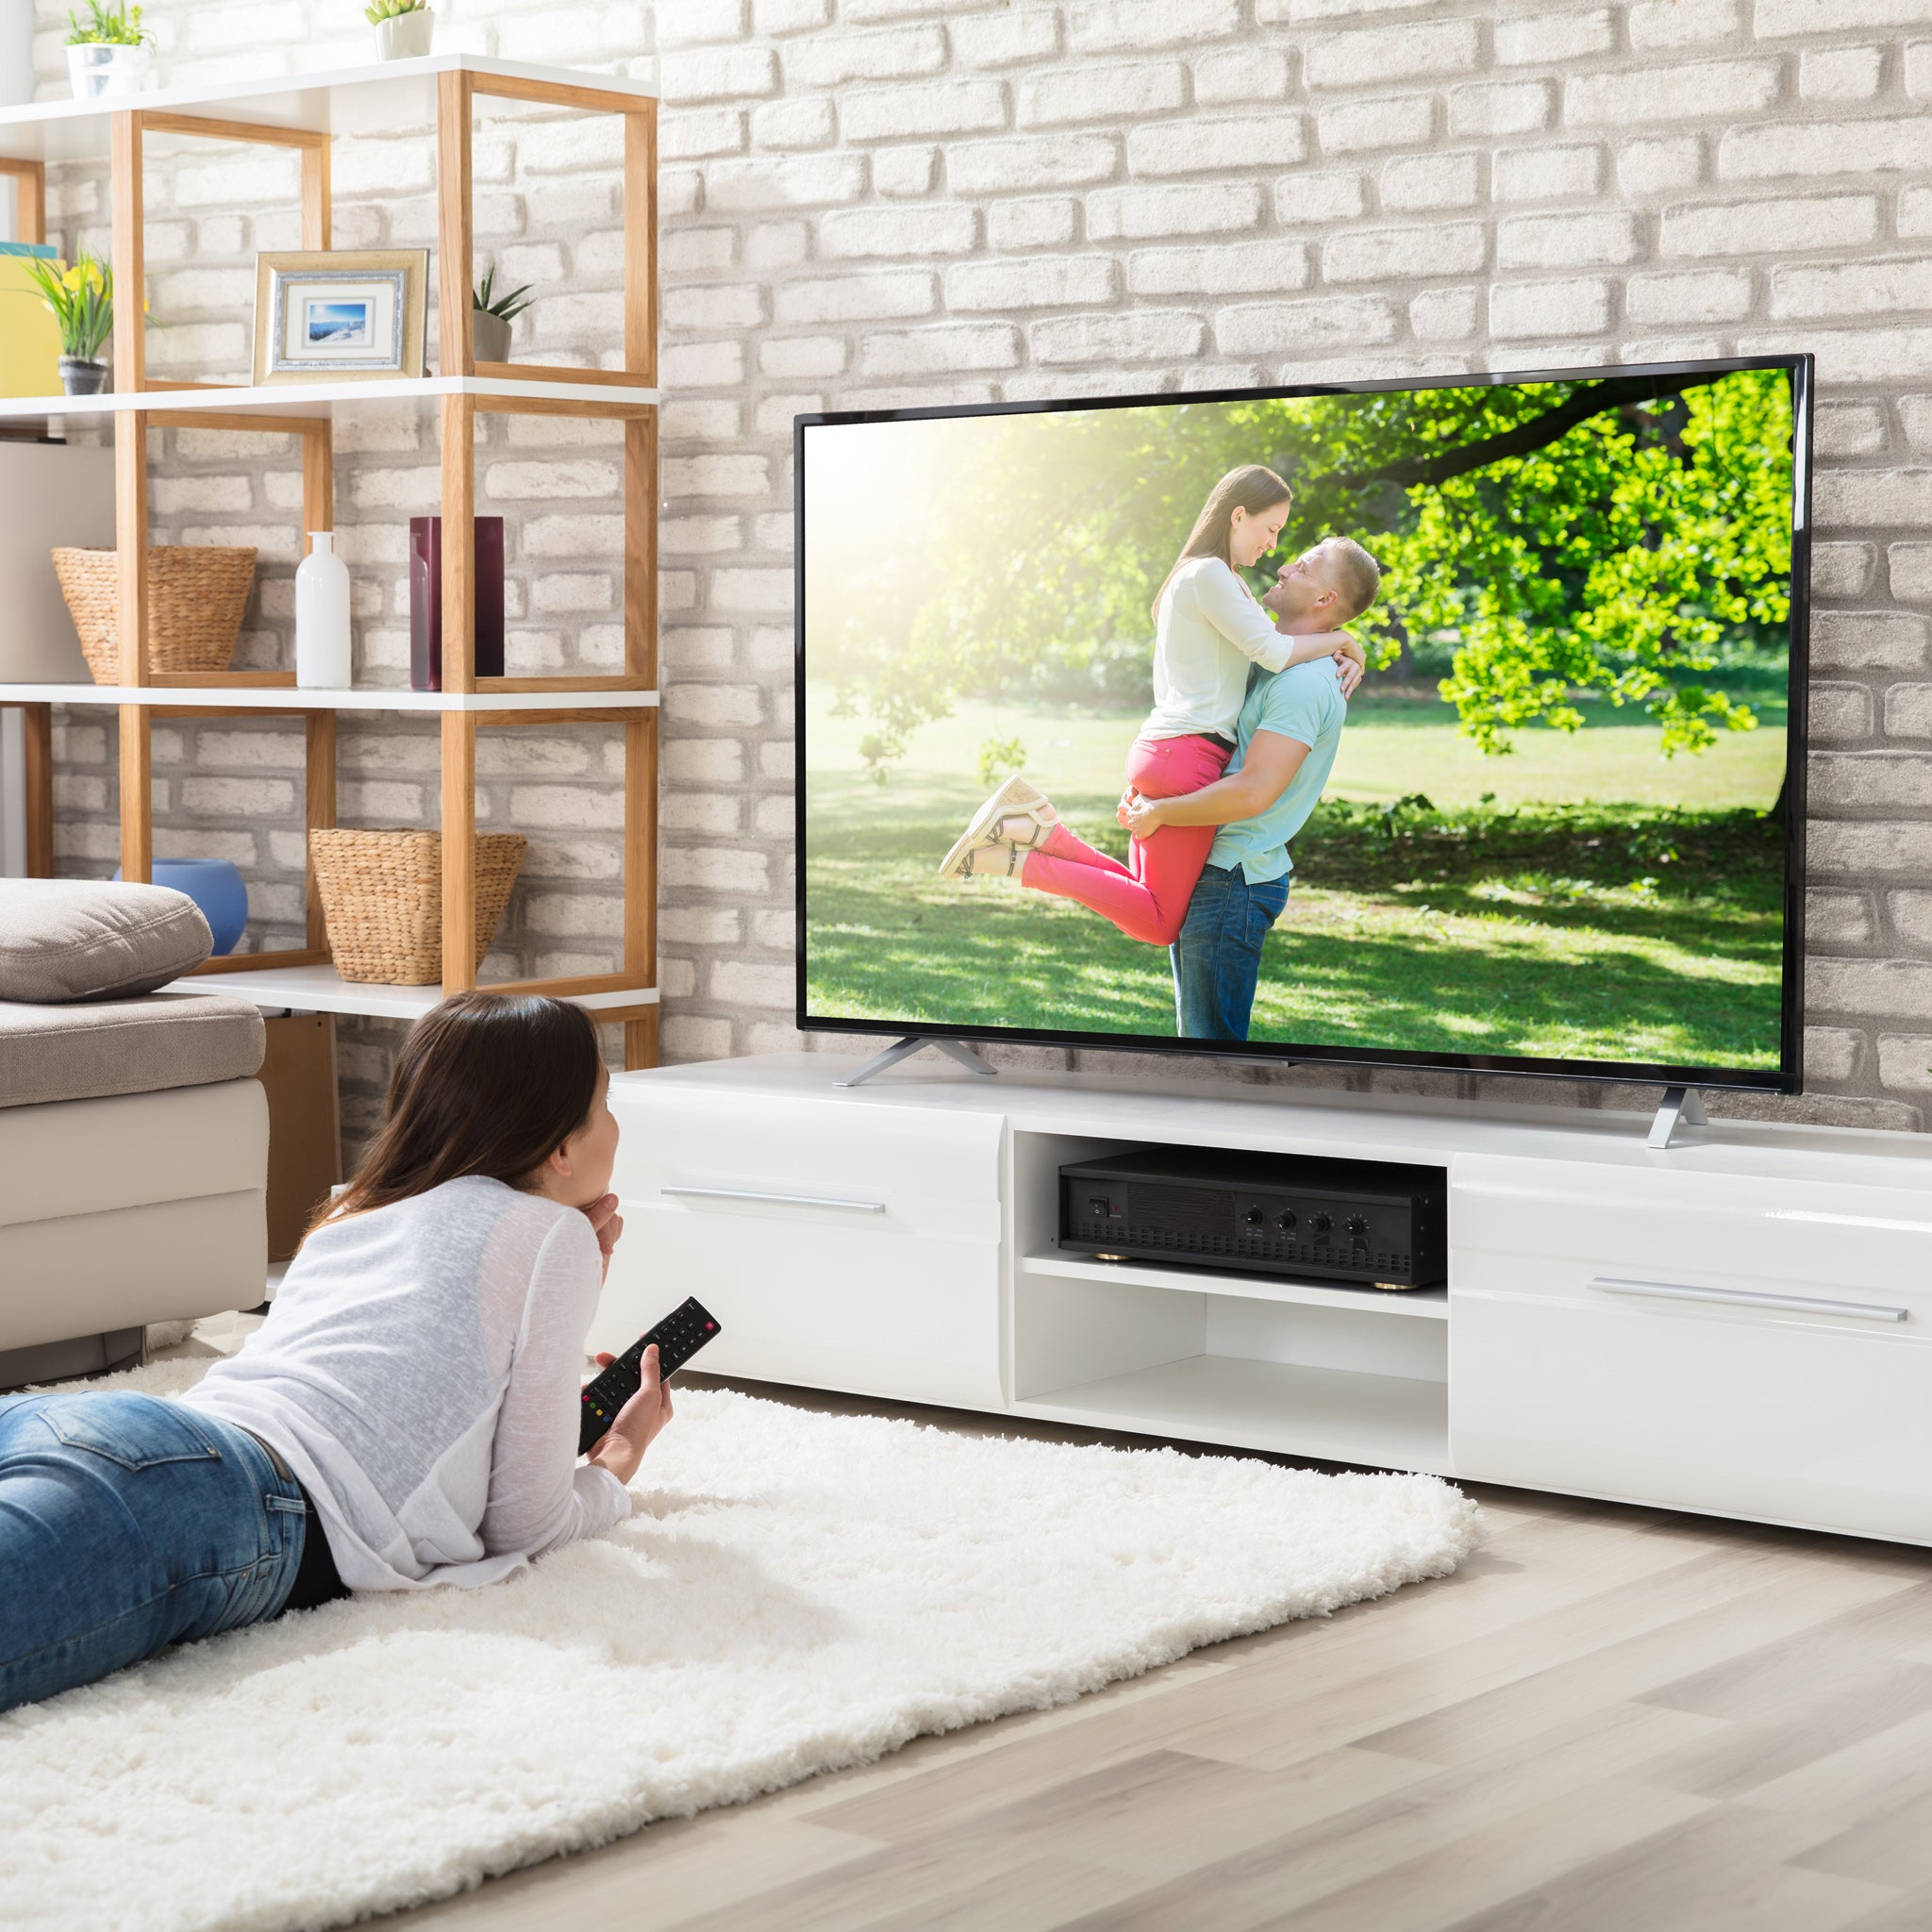 Televsions and Home Theater | Kipe it